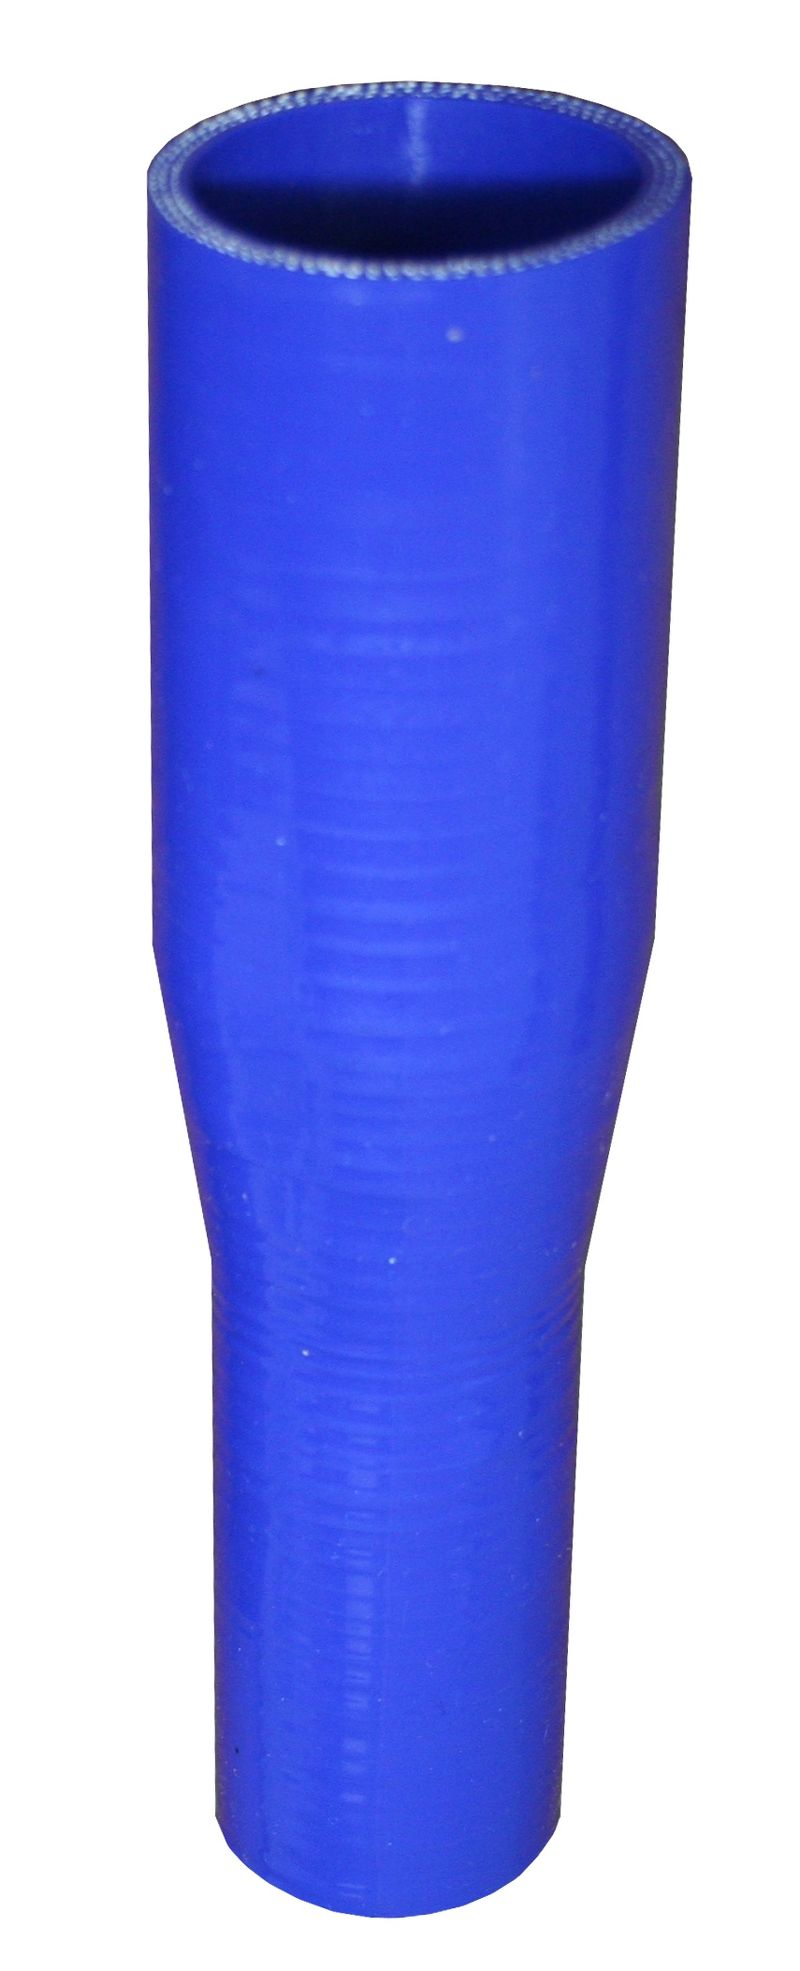 Hose  Blue Silicone  1.25 To 1.75 Coupler  6.00 Long